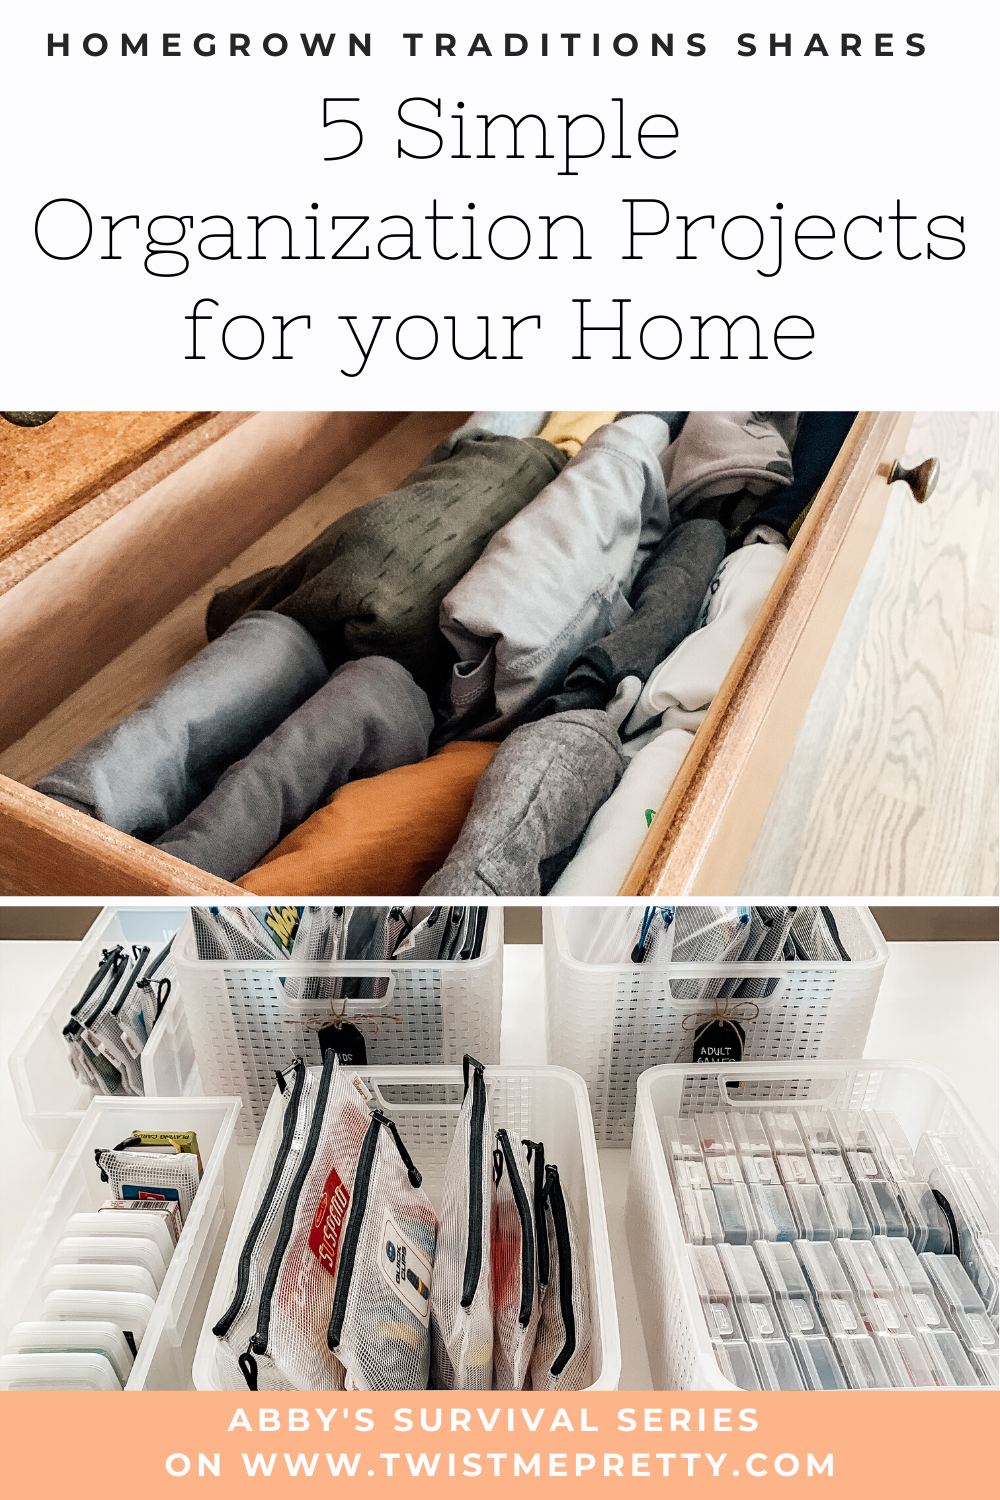 Homegrown Traditions shares 5 Simple Organization Projects for your Home. www.TwistMePretty.com